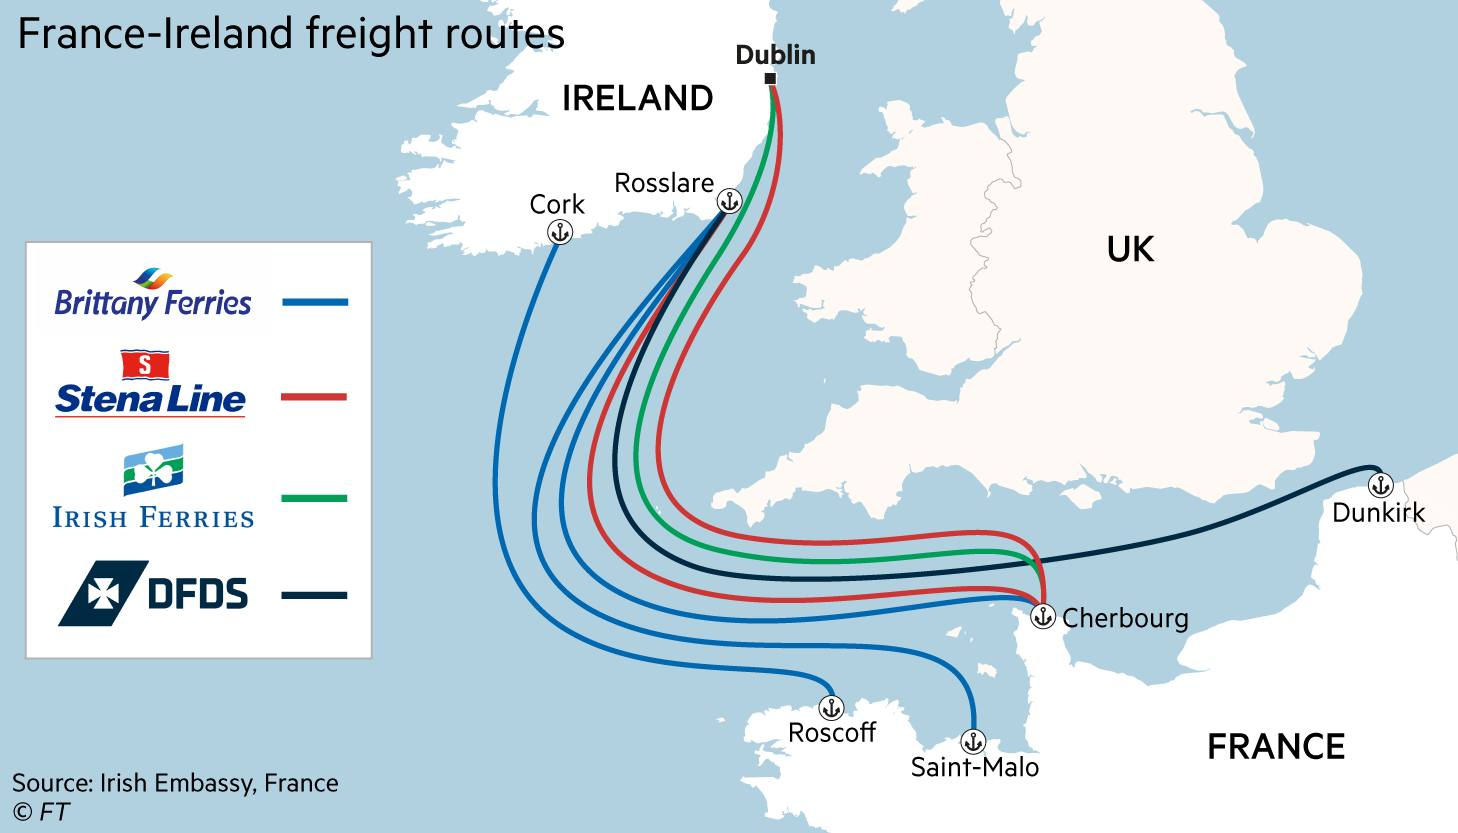 France-Ireland freight routes map